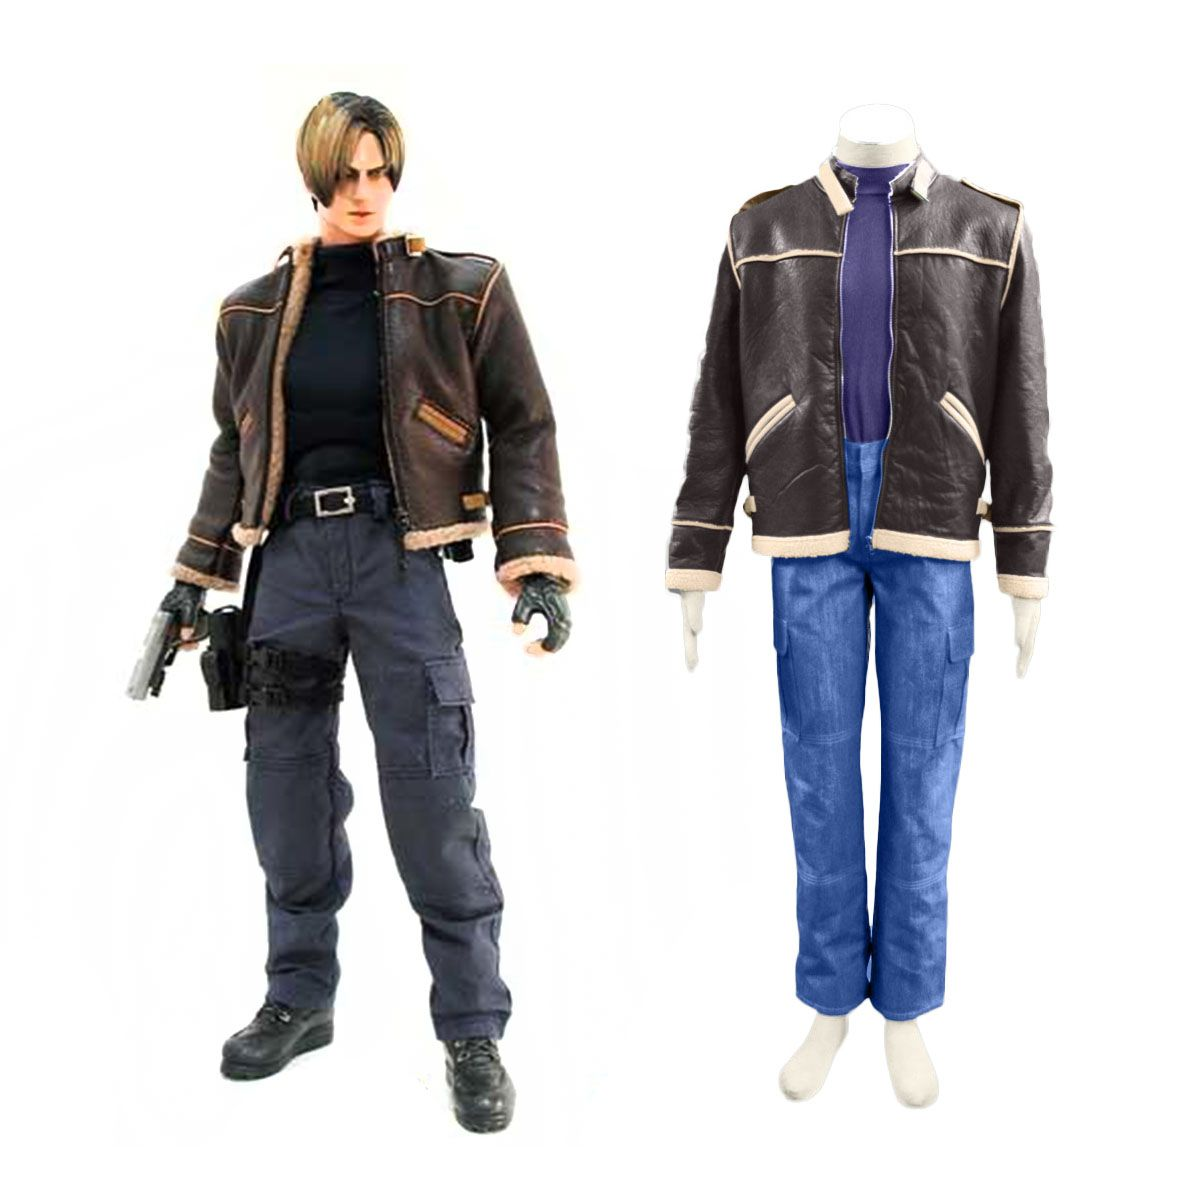 Resident Evil 4 Leon S Kennedy Cosplay Costume Deluxe